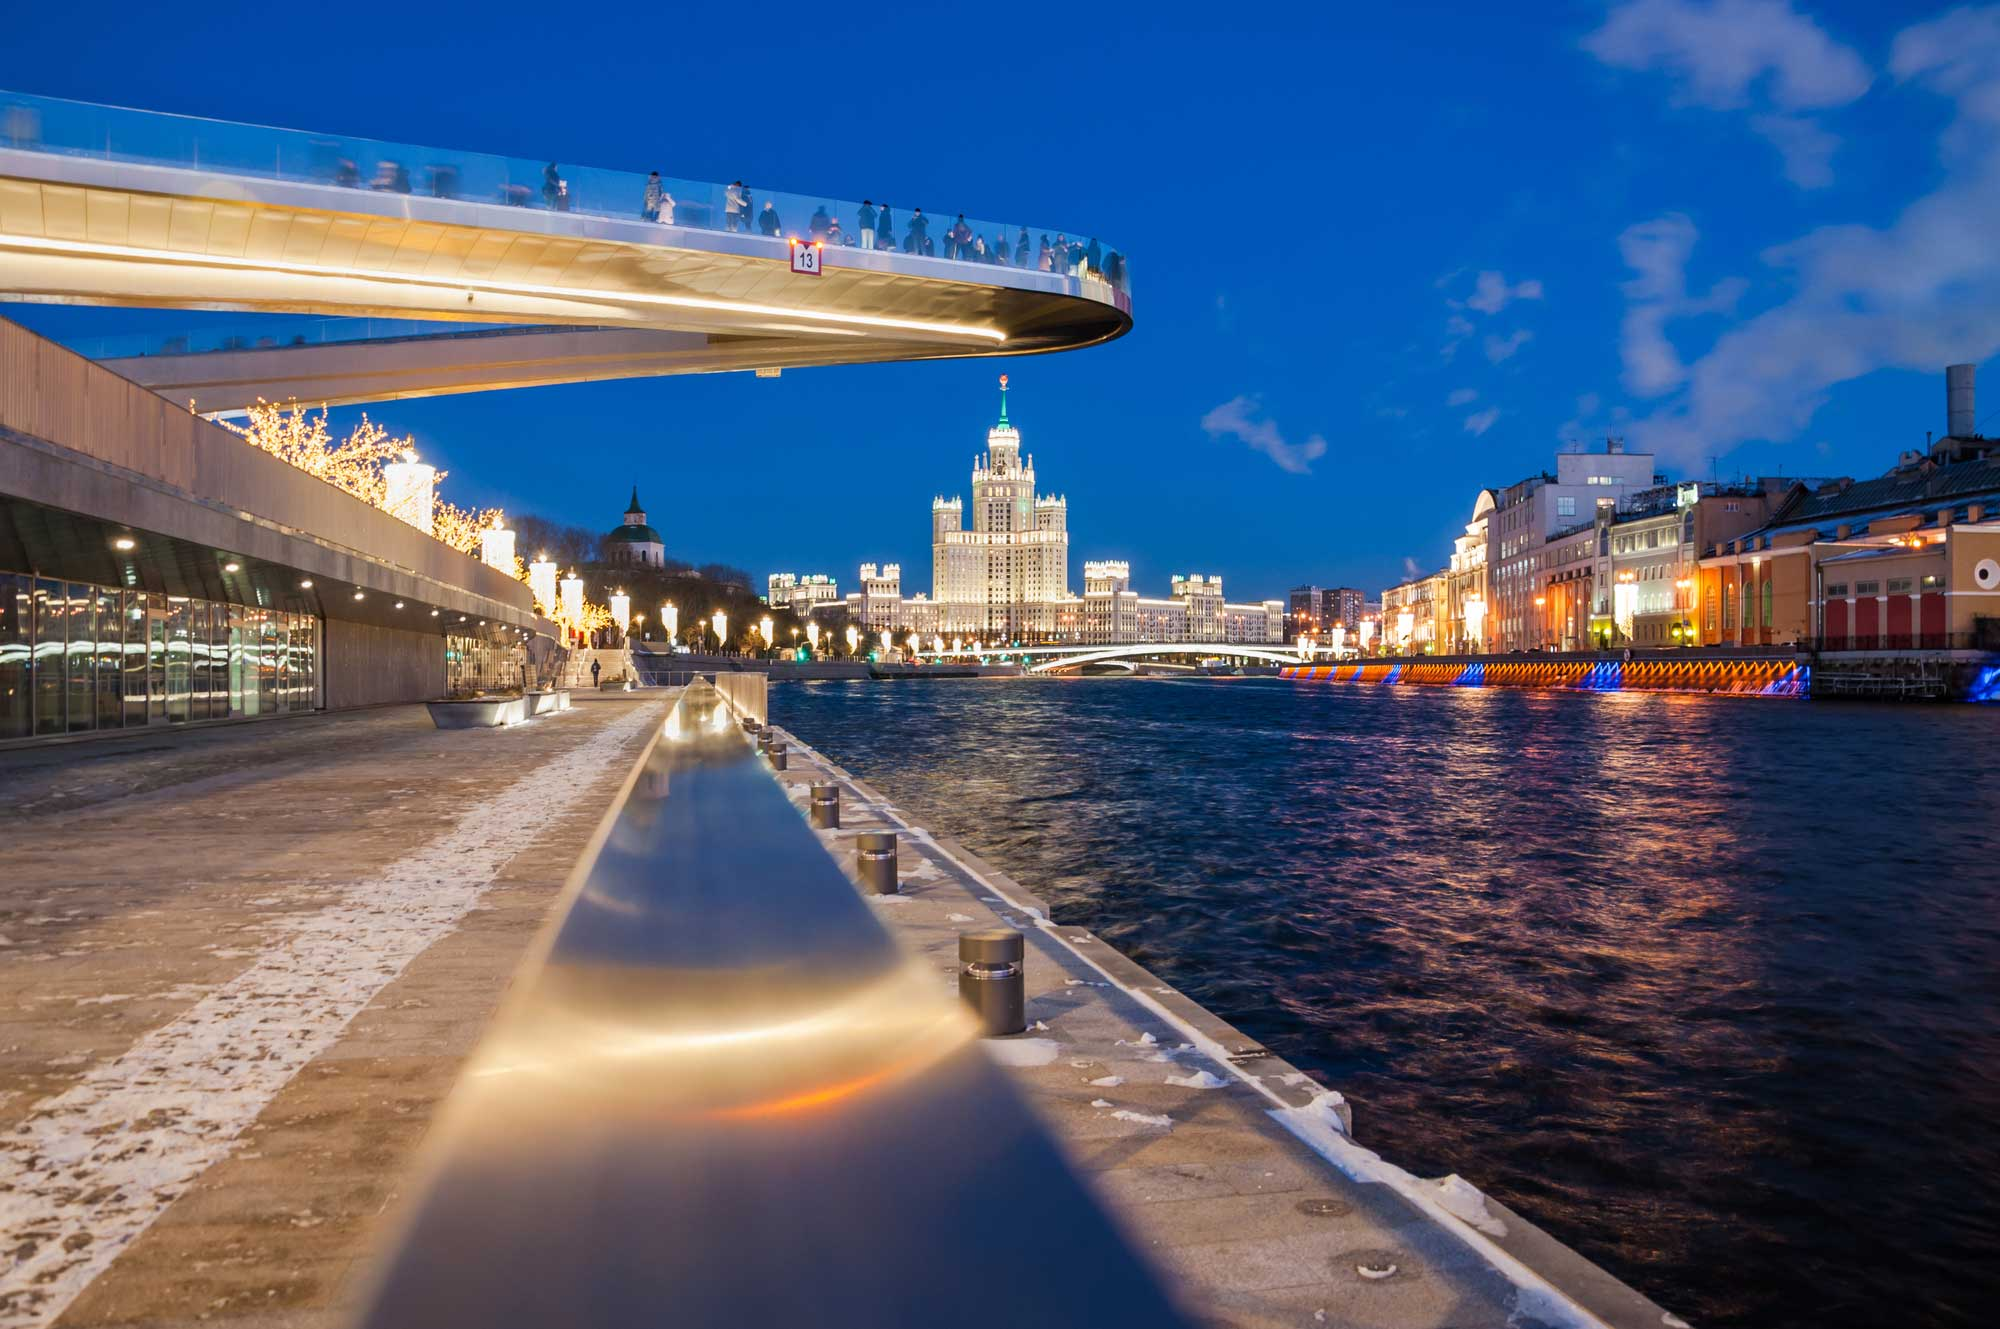 Zaryadye Floating Bridge